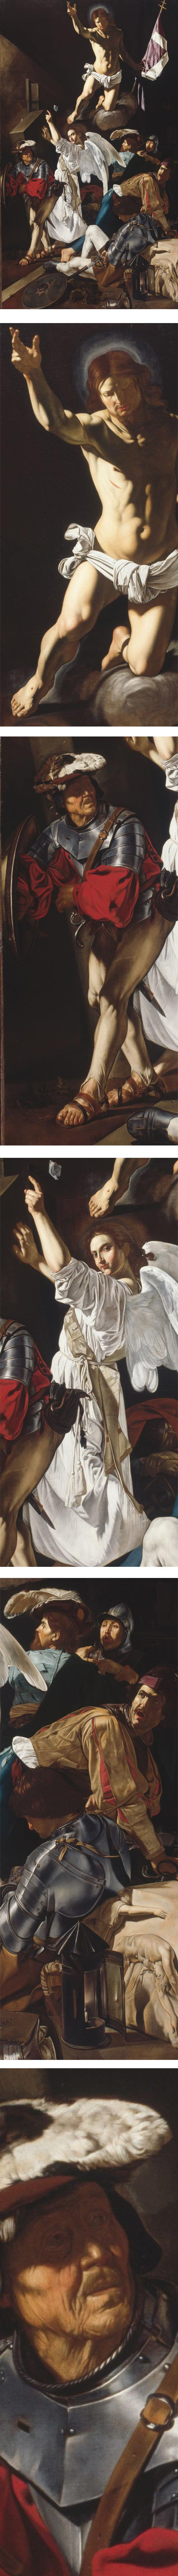 The Resurrection by Cecco del Caragaggio (Francesco Buoneri)